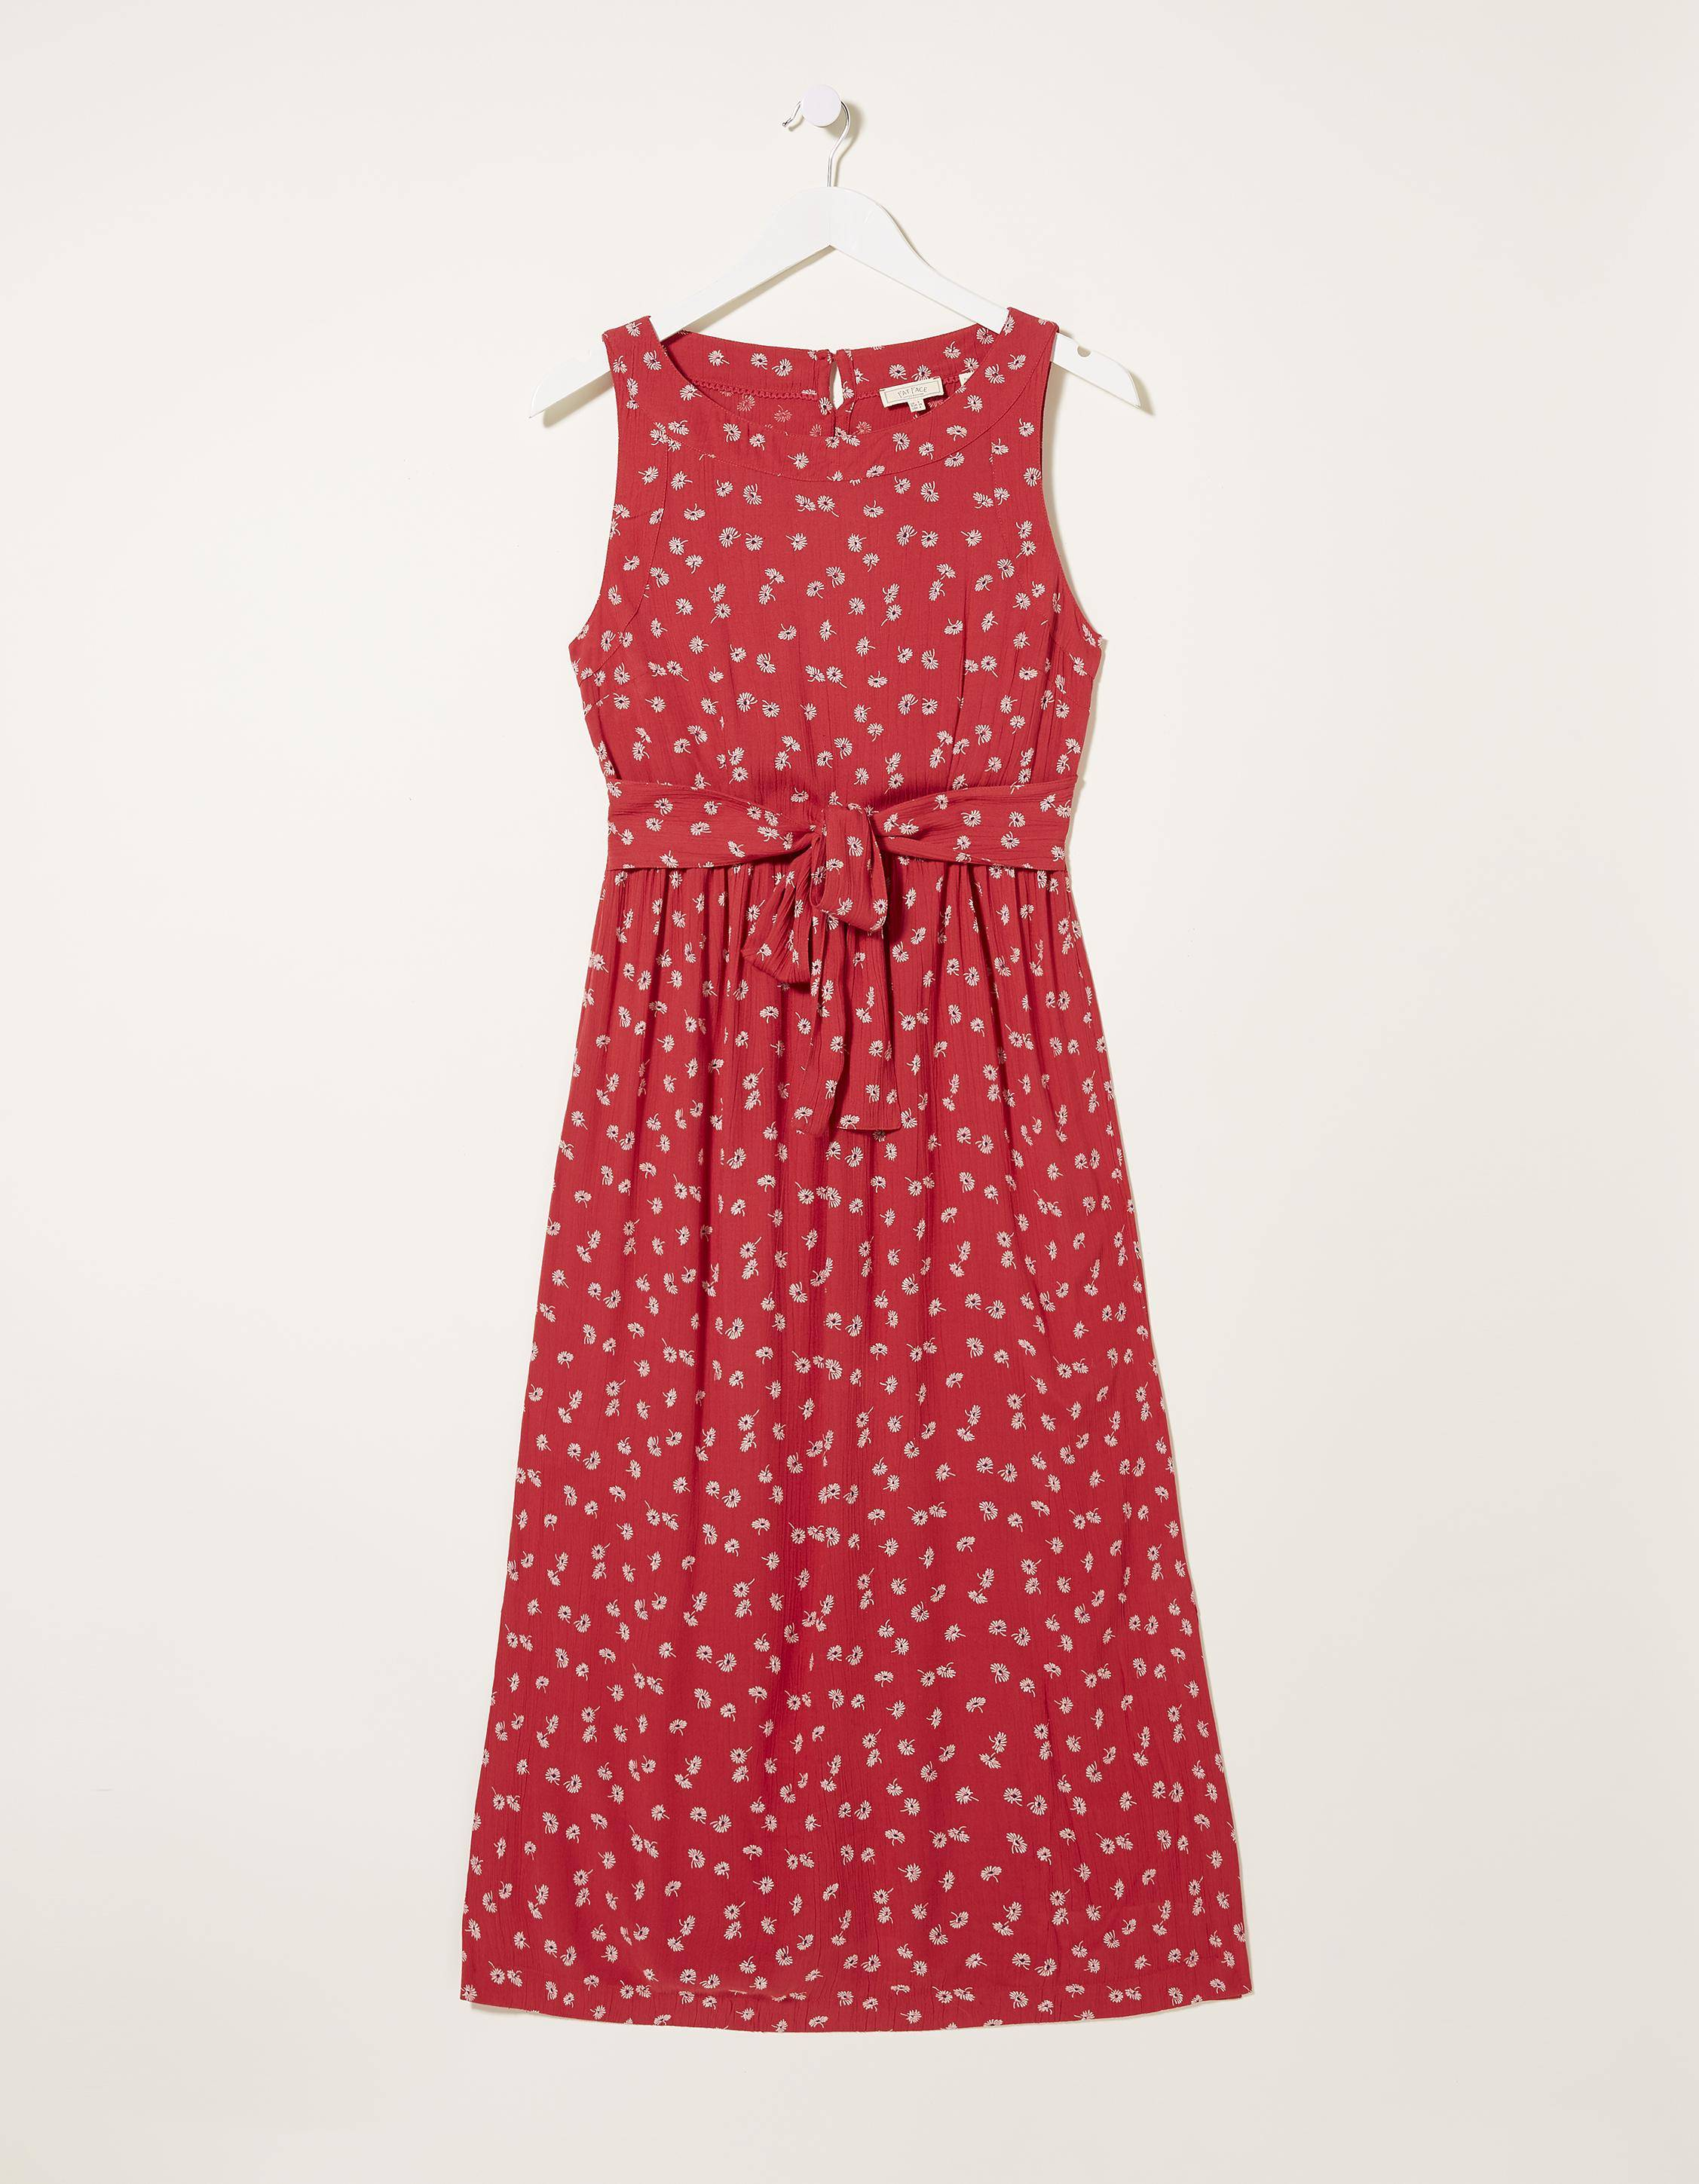 Fat Face Laurie Daisy Midi Dress  - Size: 12